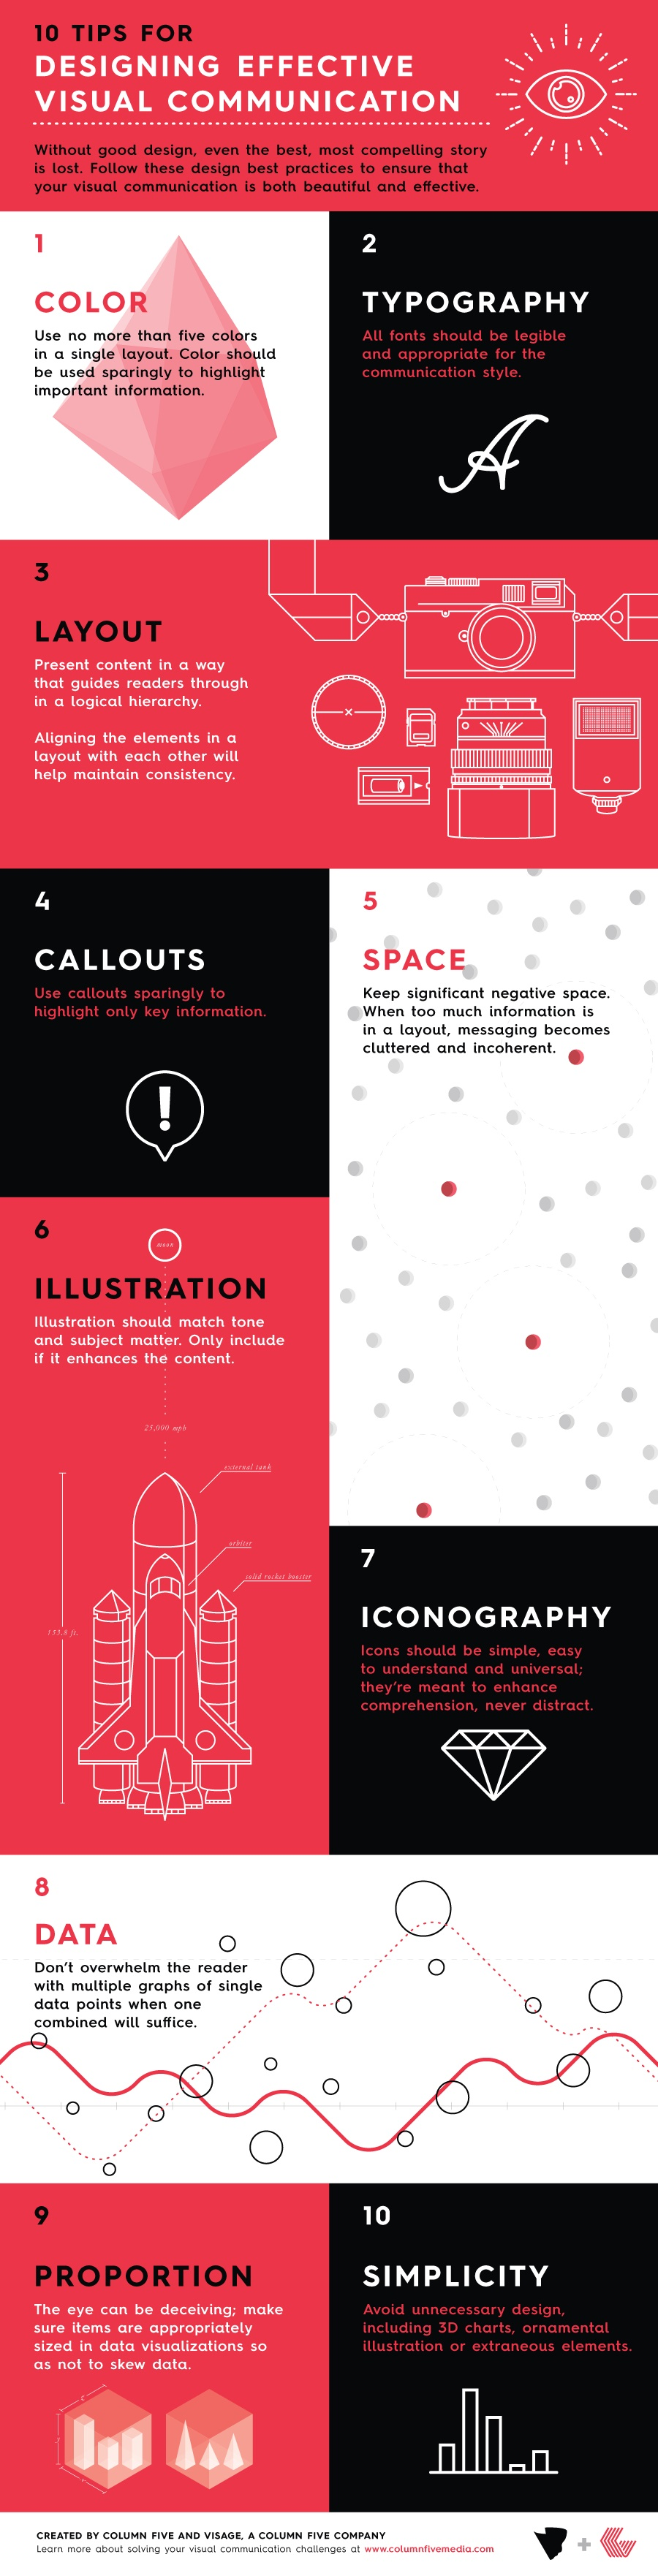 Top-tips-for-effective-visual-communication